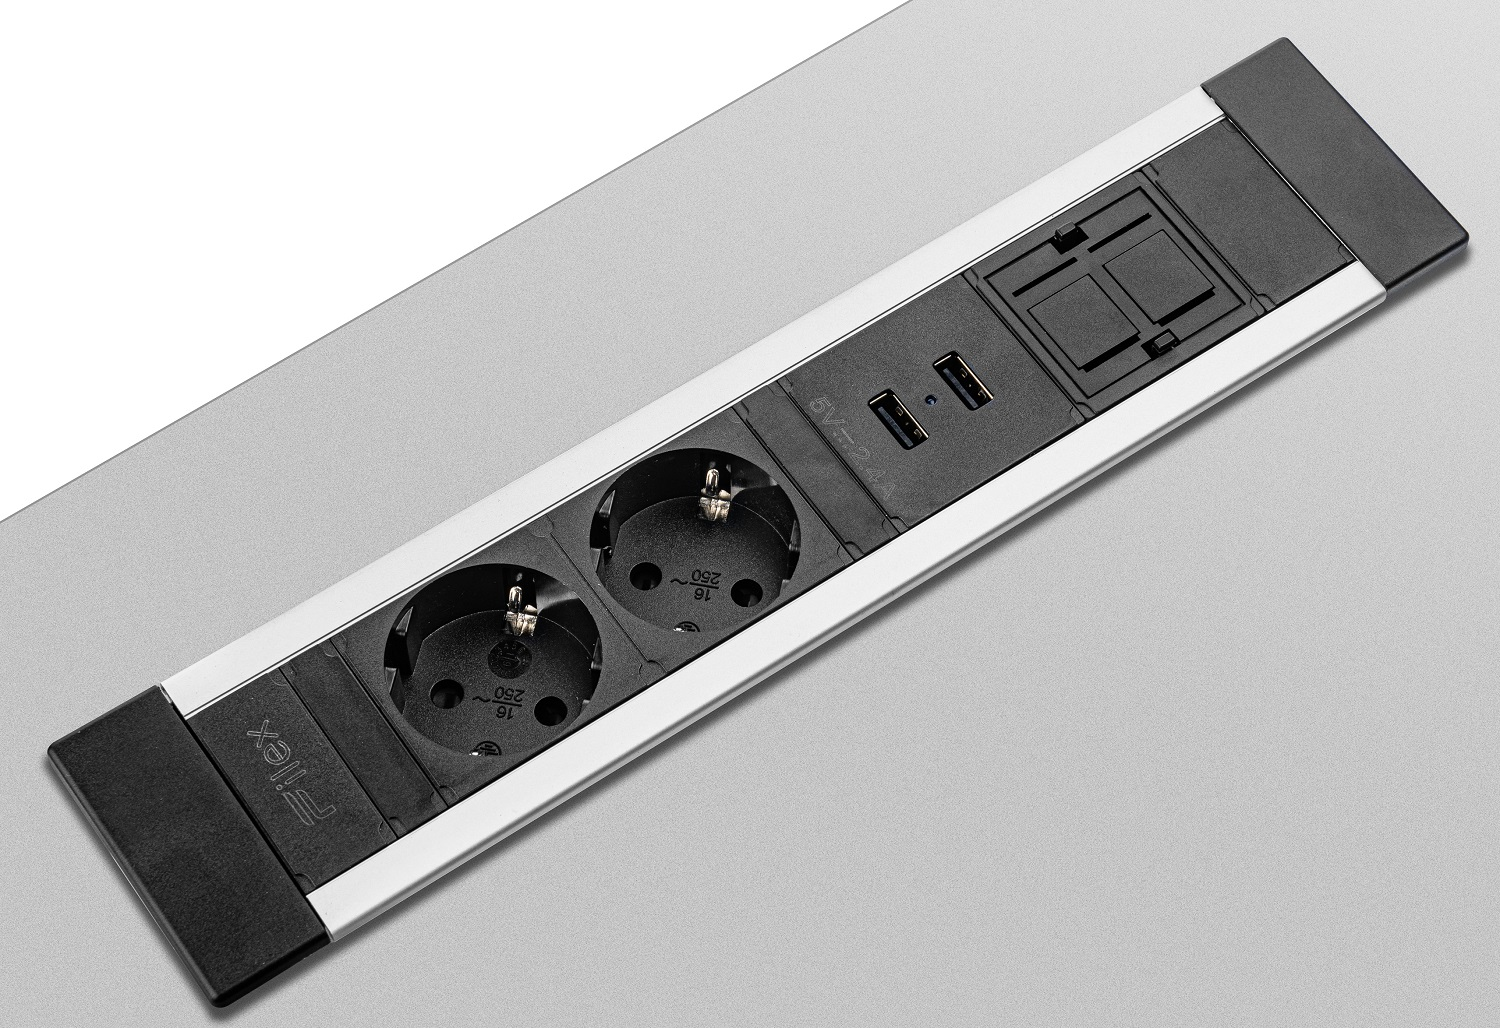 Built-in unit Power Desk Insert | Bring energy into your workplace | Visit Worktrainer.com